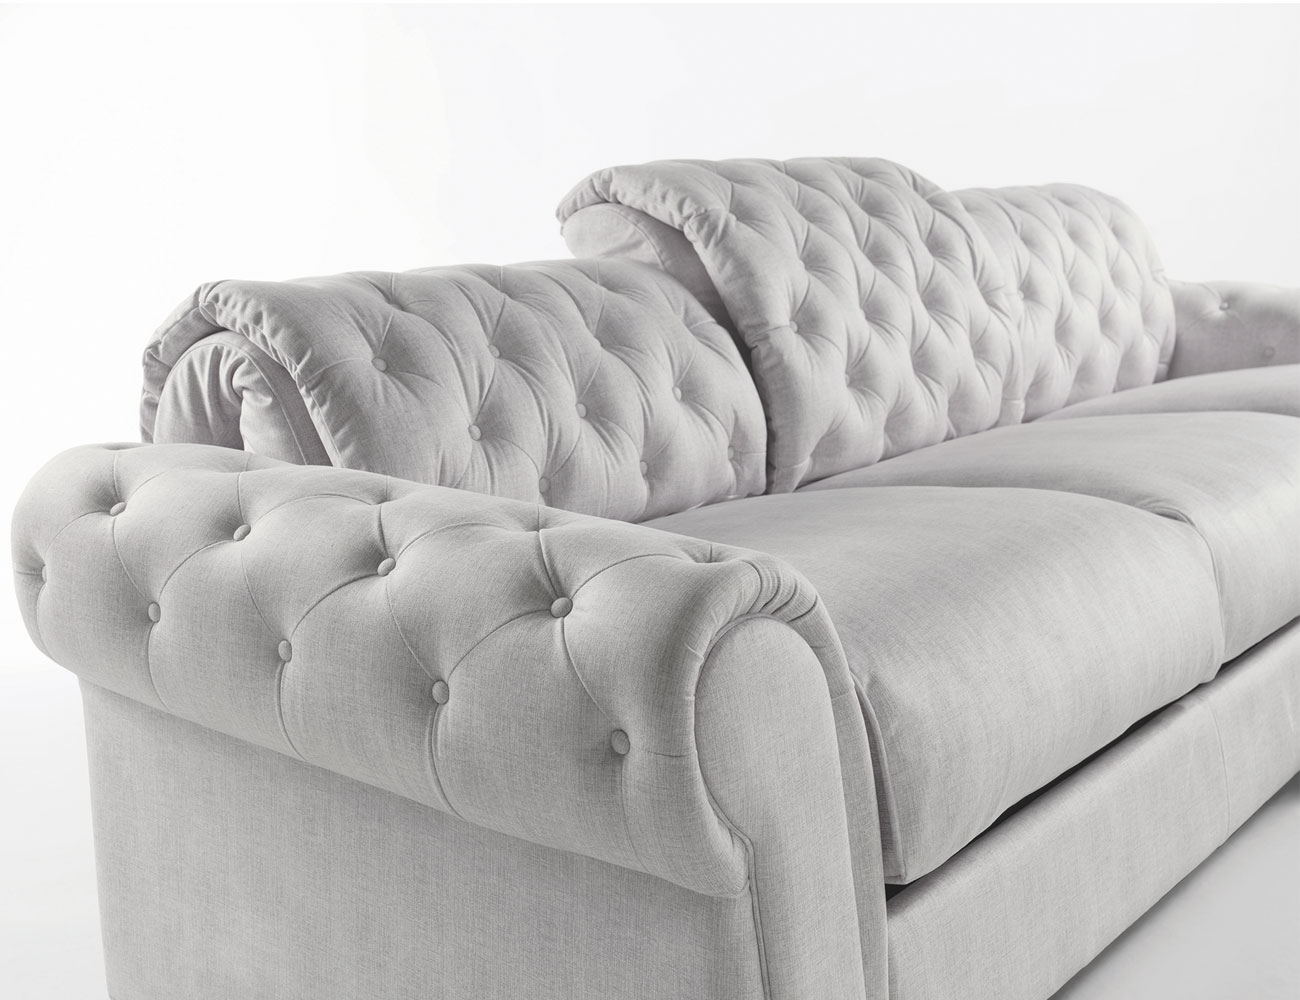 Sofa chaiselongue gran lujo decorativo capitone blanco tela 157